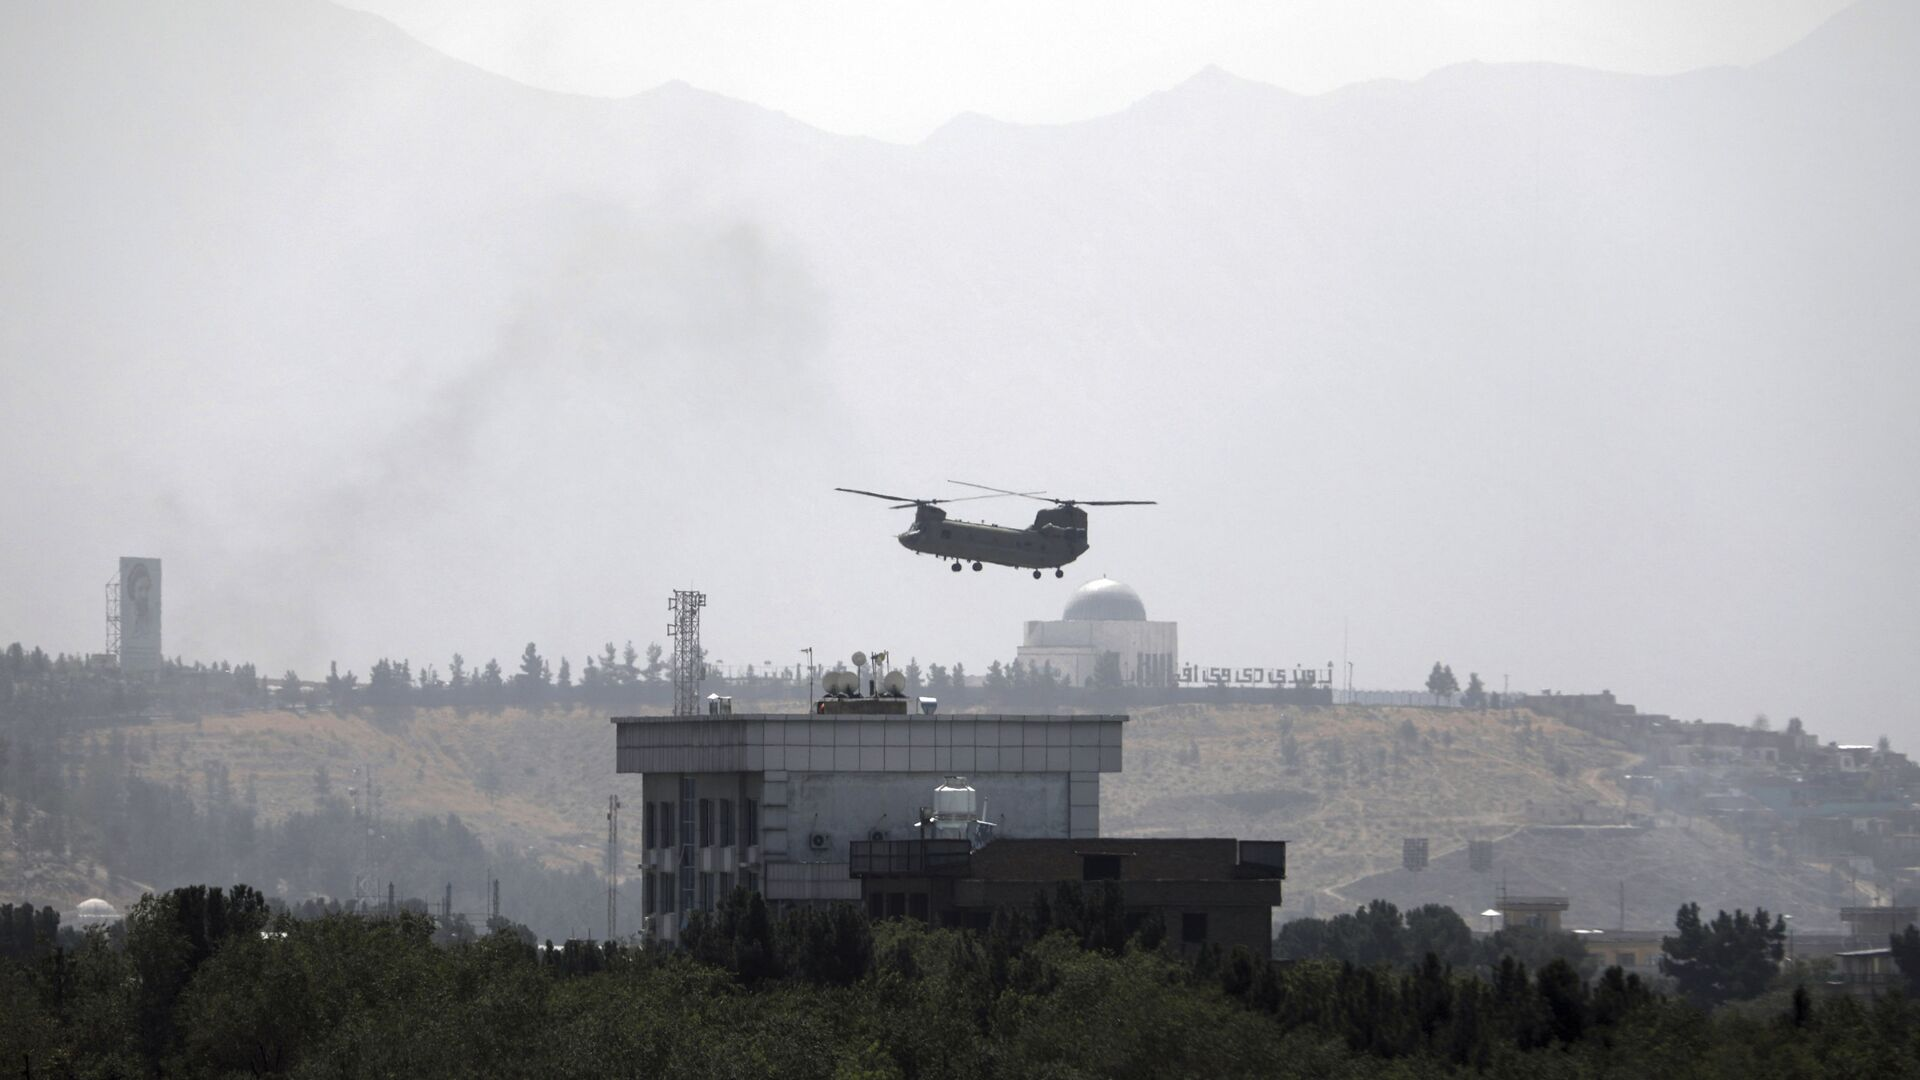 A U.S. Chinook helicopter flies over the U.S. Embassy in Kabul, Afghanistan, Sunday, Aug. 15, 2021.  - Sputnik International, 1920, 20.09.2021